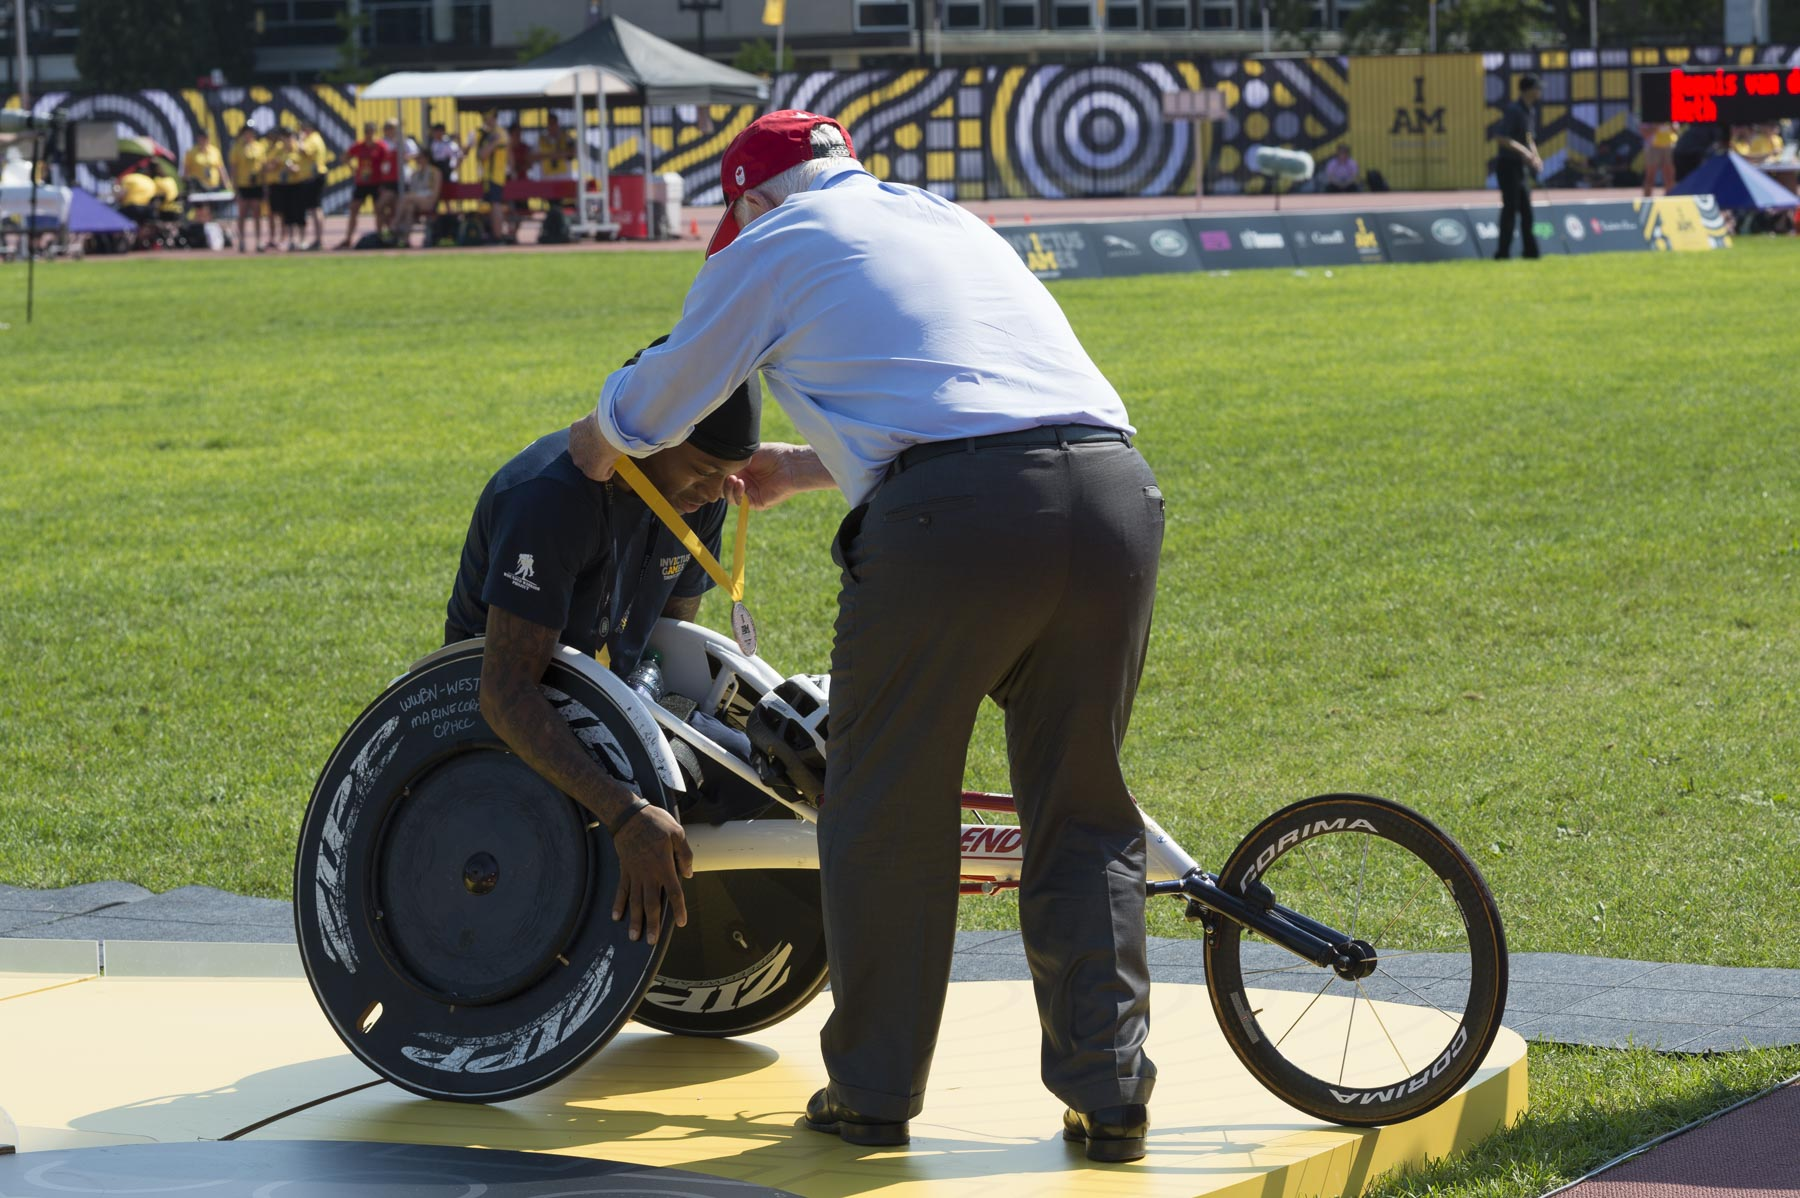 His Excellency then presented medals to the top three competitors in the men's 100-metre wheelchair race.